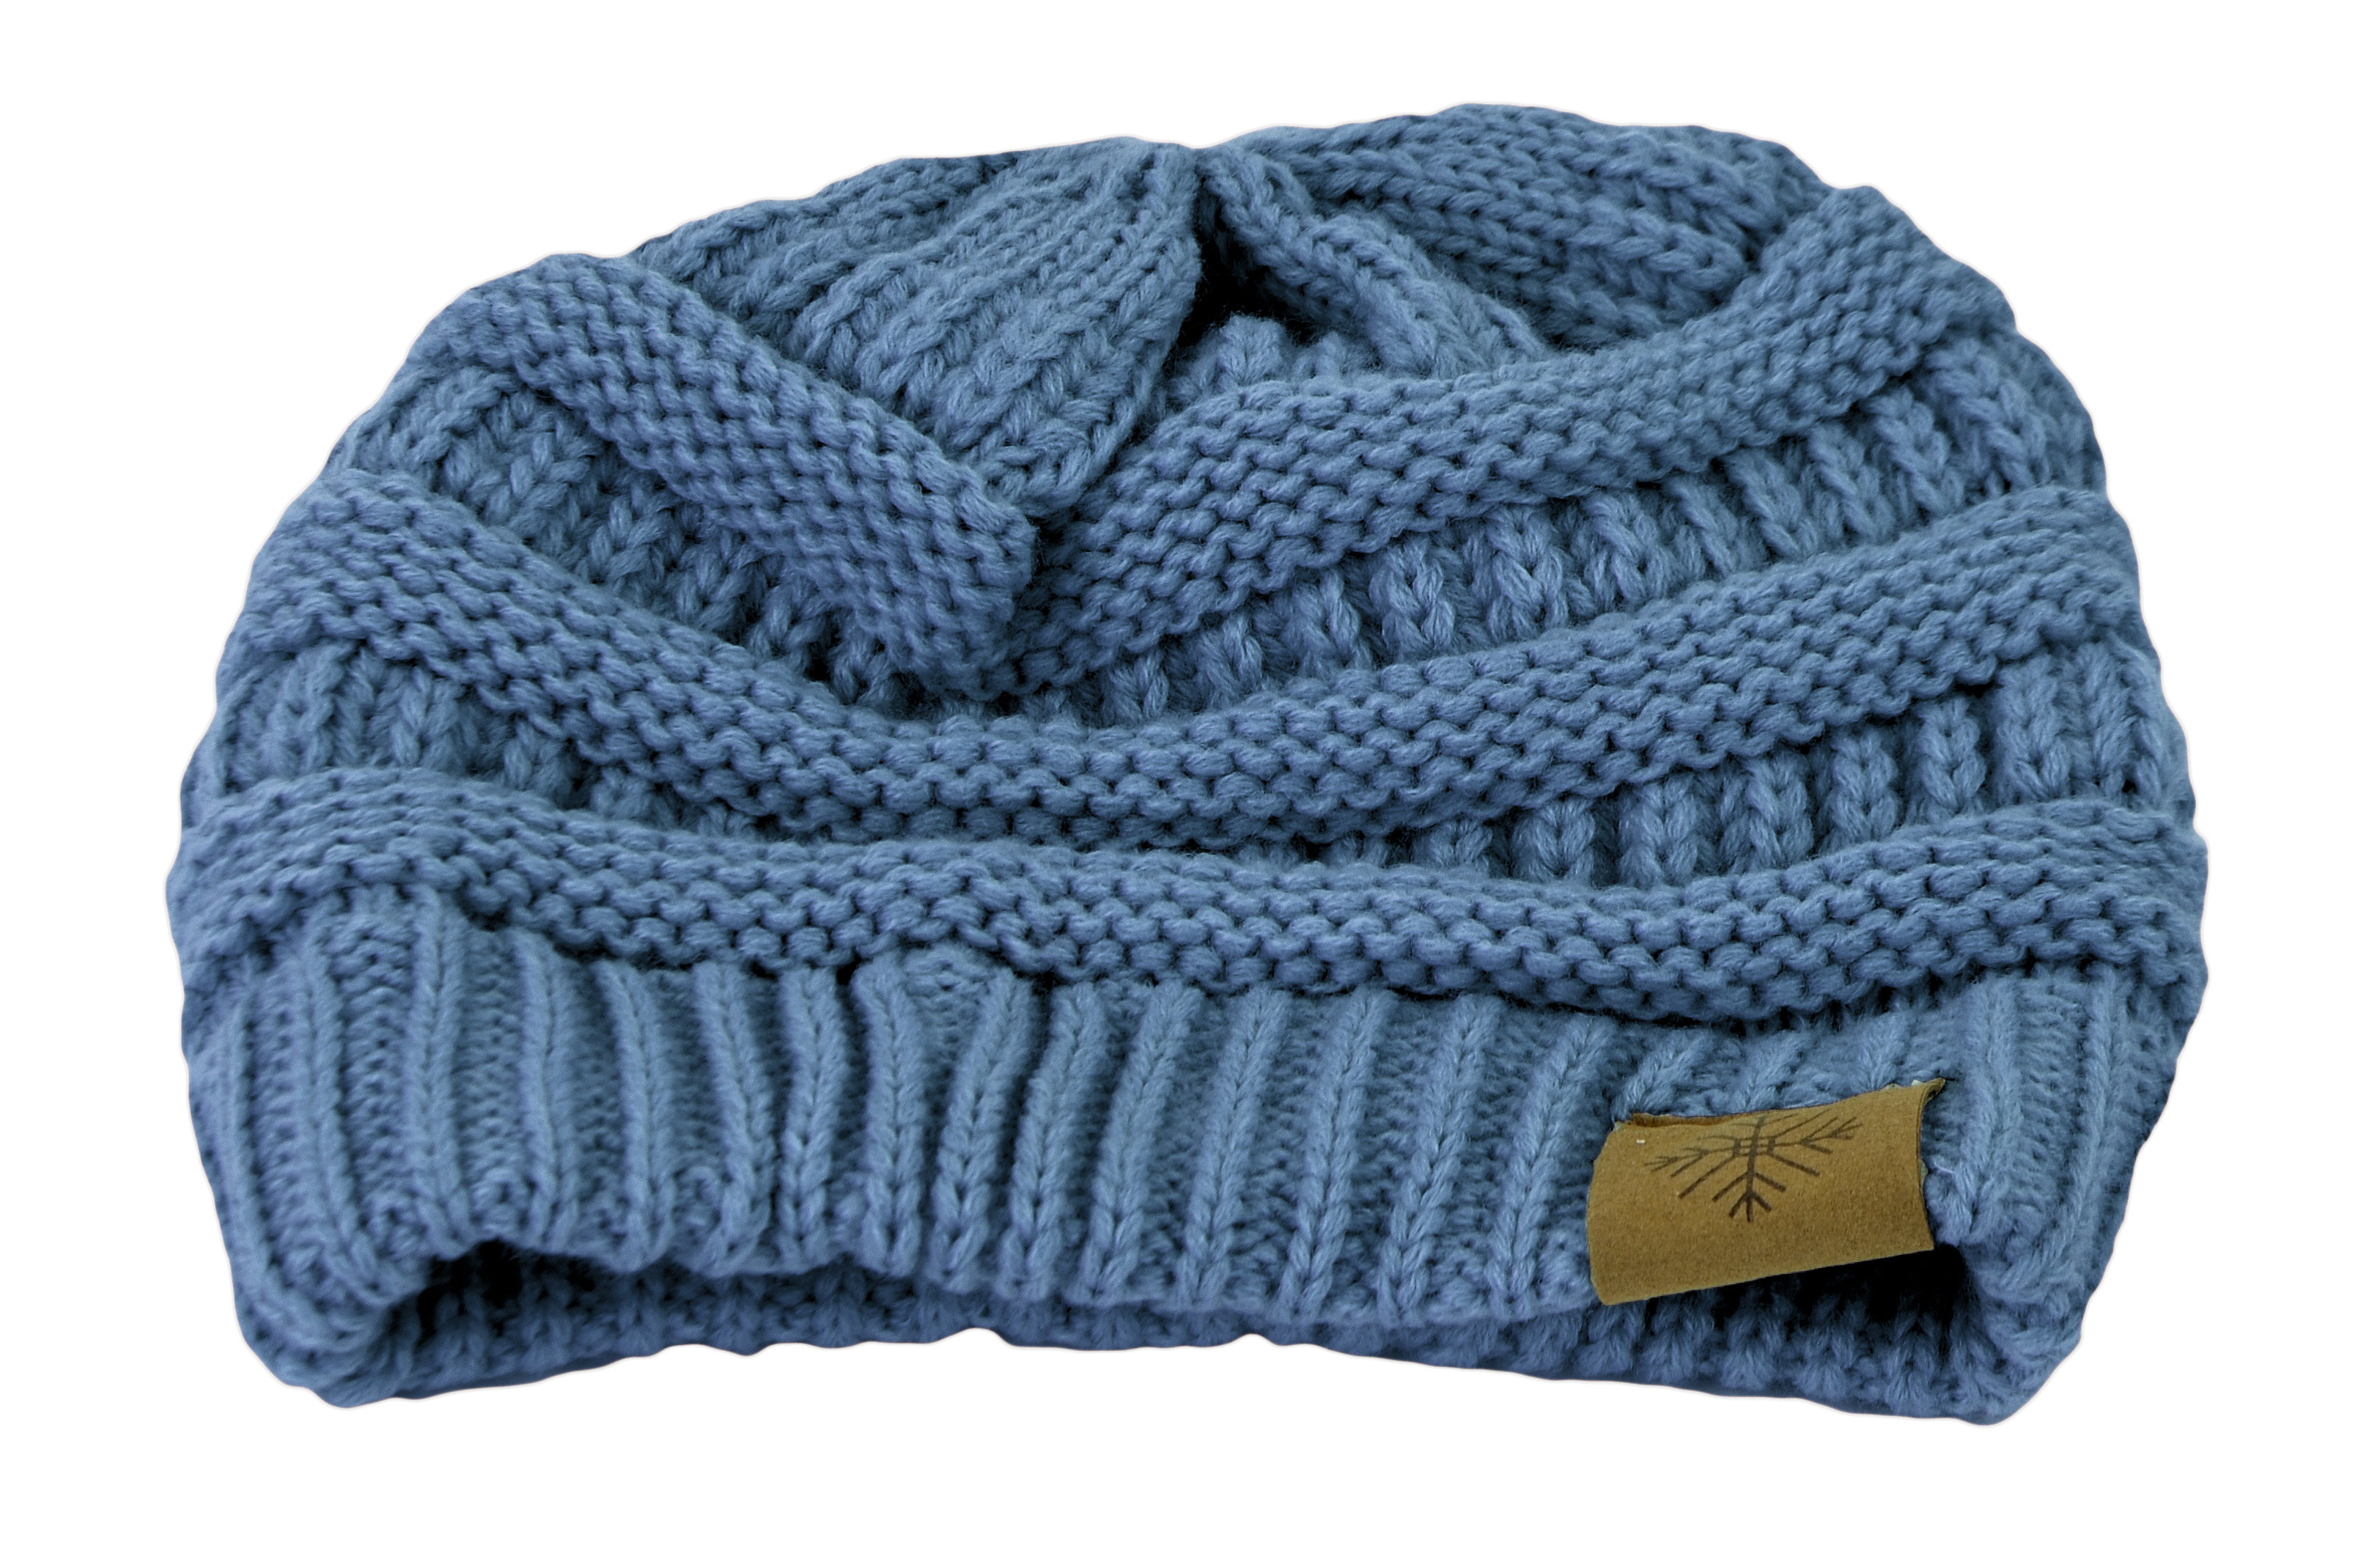 Belle Donne - Women's Winter Fleece Lined Cable Knitted Pom Pom Beanie Hat - INDI BLUE-II